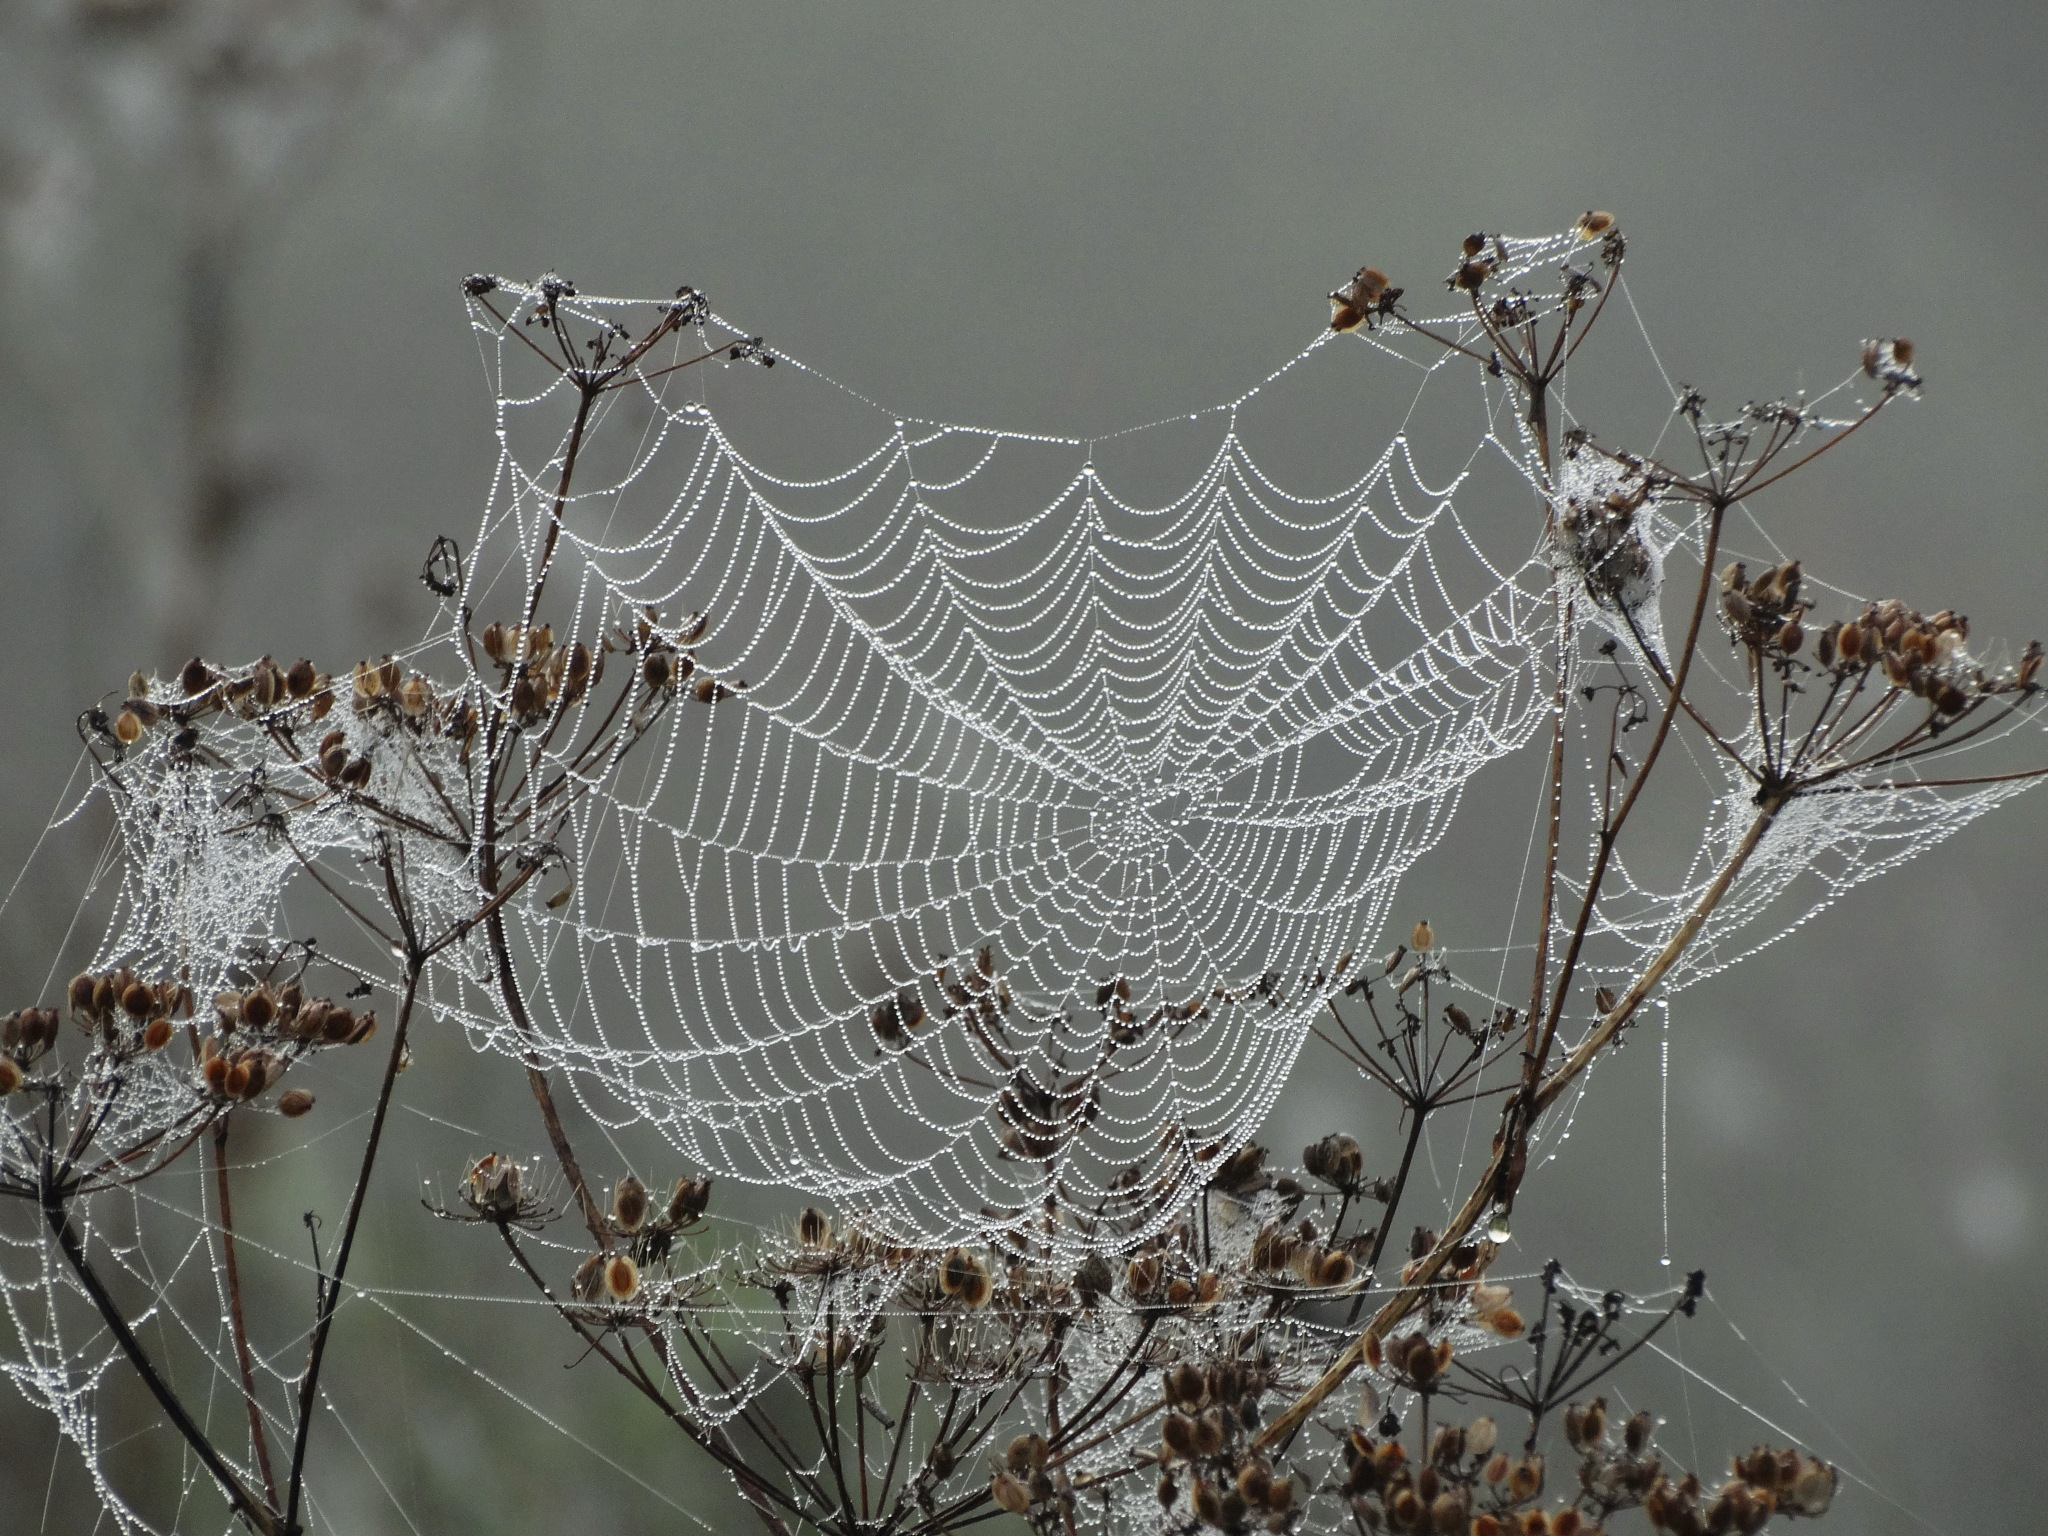 Fog and lace by Ivars Duntavs